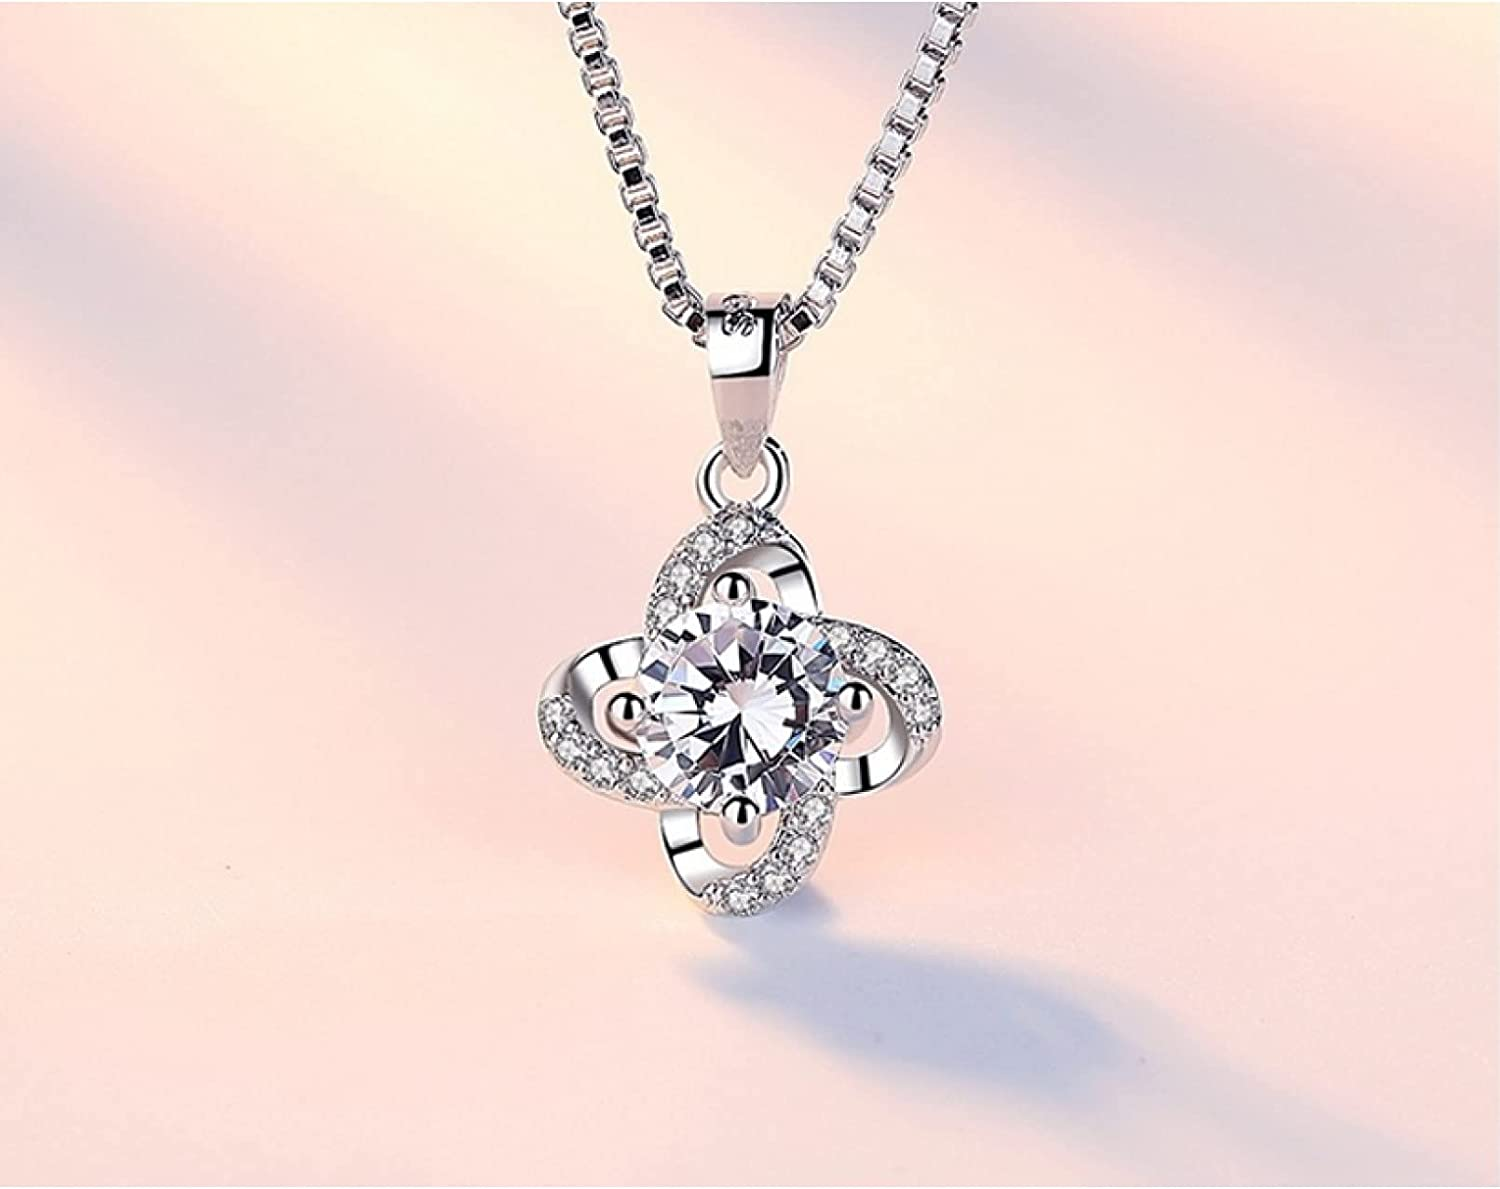 WDBUN Necklace Pendant Zircon Clover Flower Twist Windmill Forever Pendant Neckace Chain Necklace collares Christmas Mother's Day Valentine's Day Birthday Gift